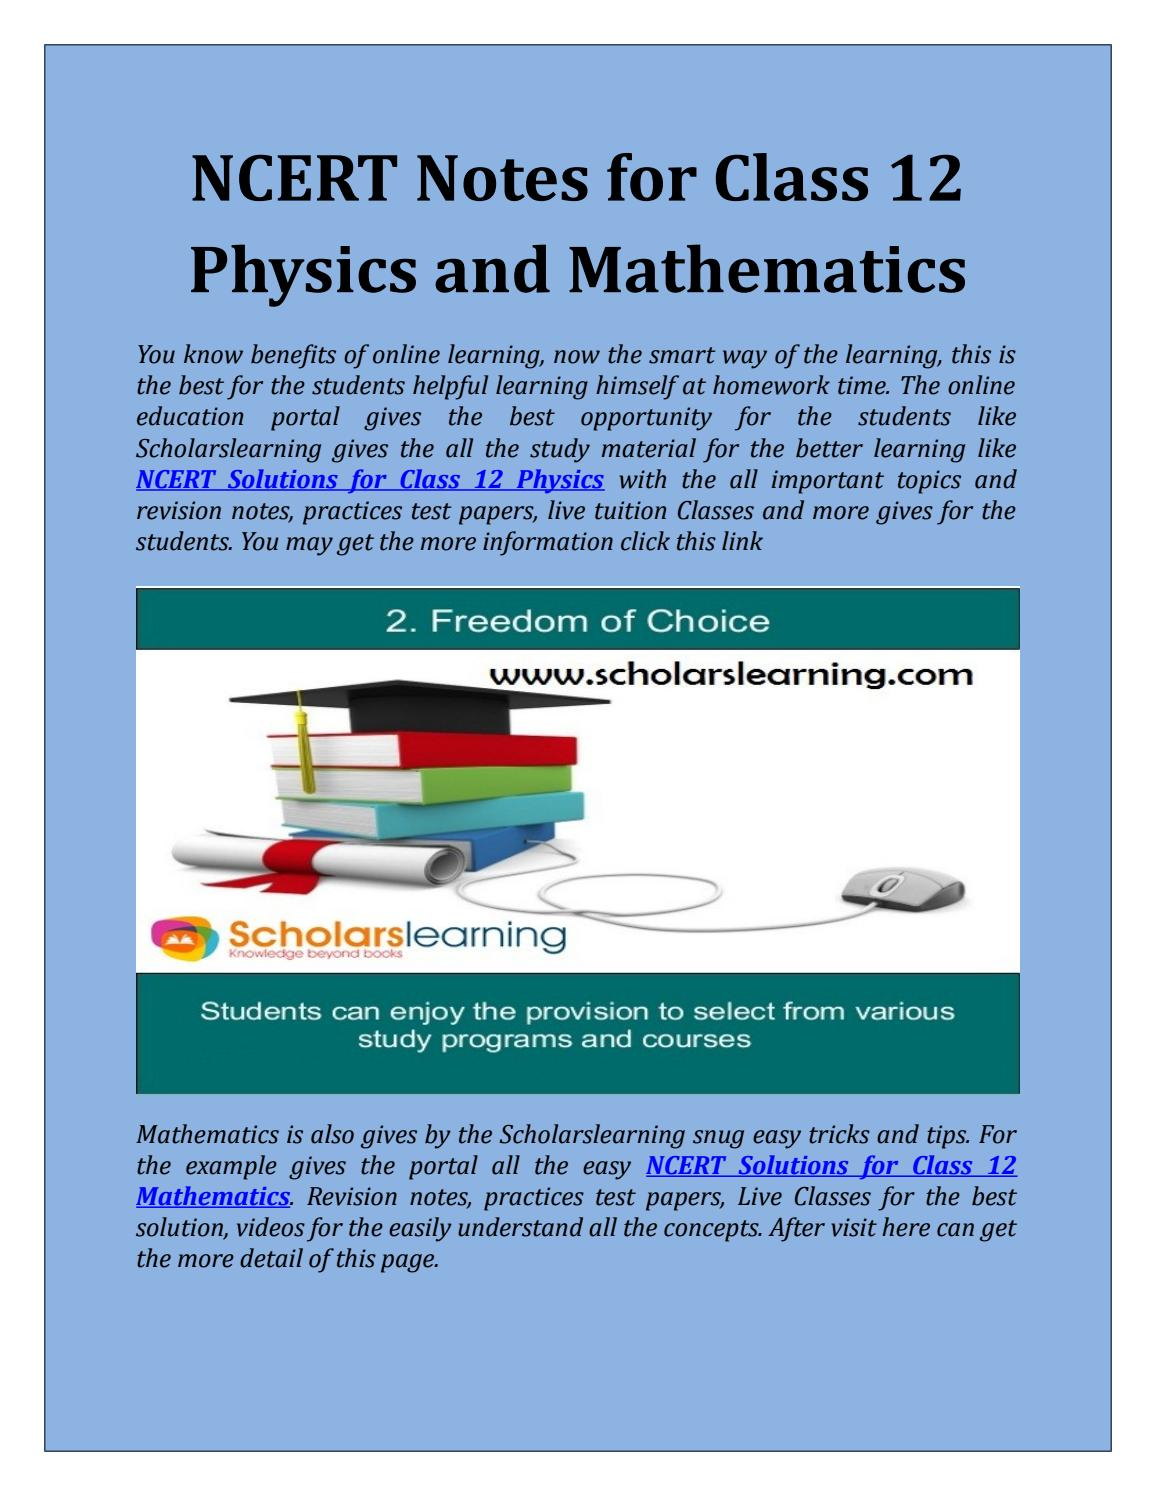 Ncert notes for class 12 physics and mathematics by Scholars